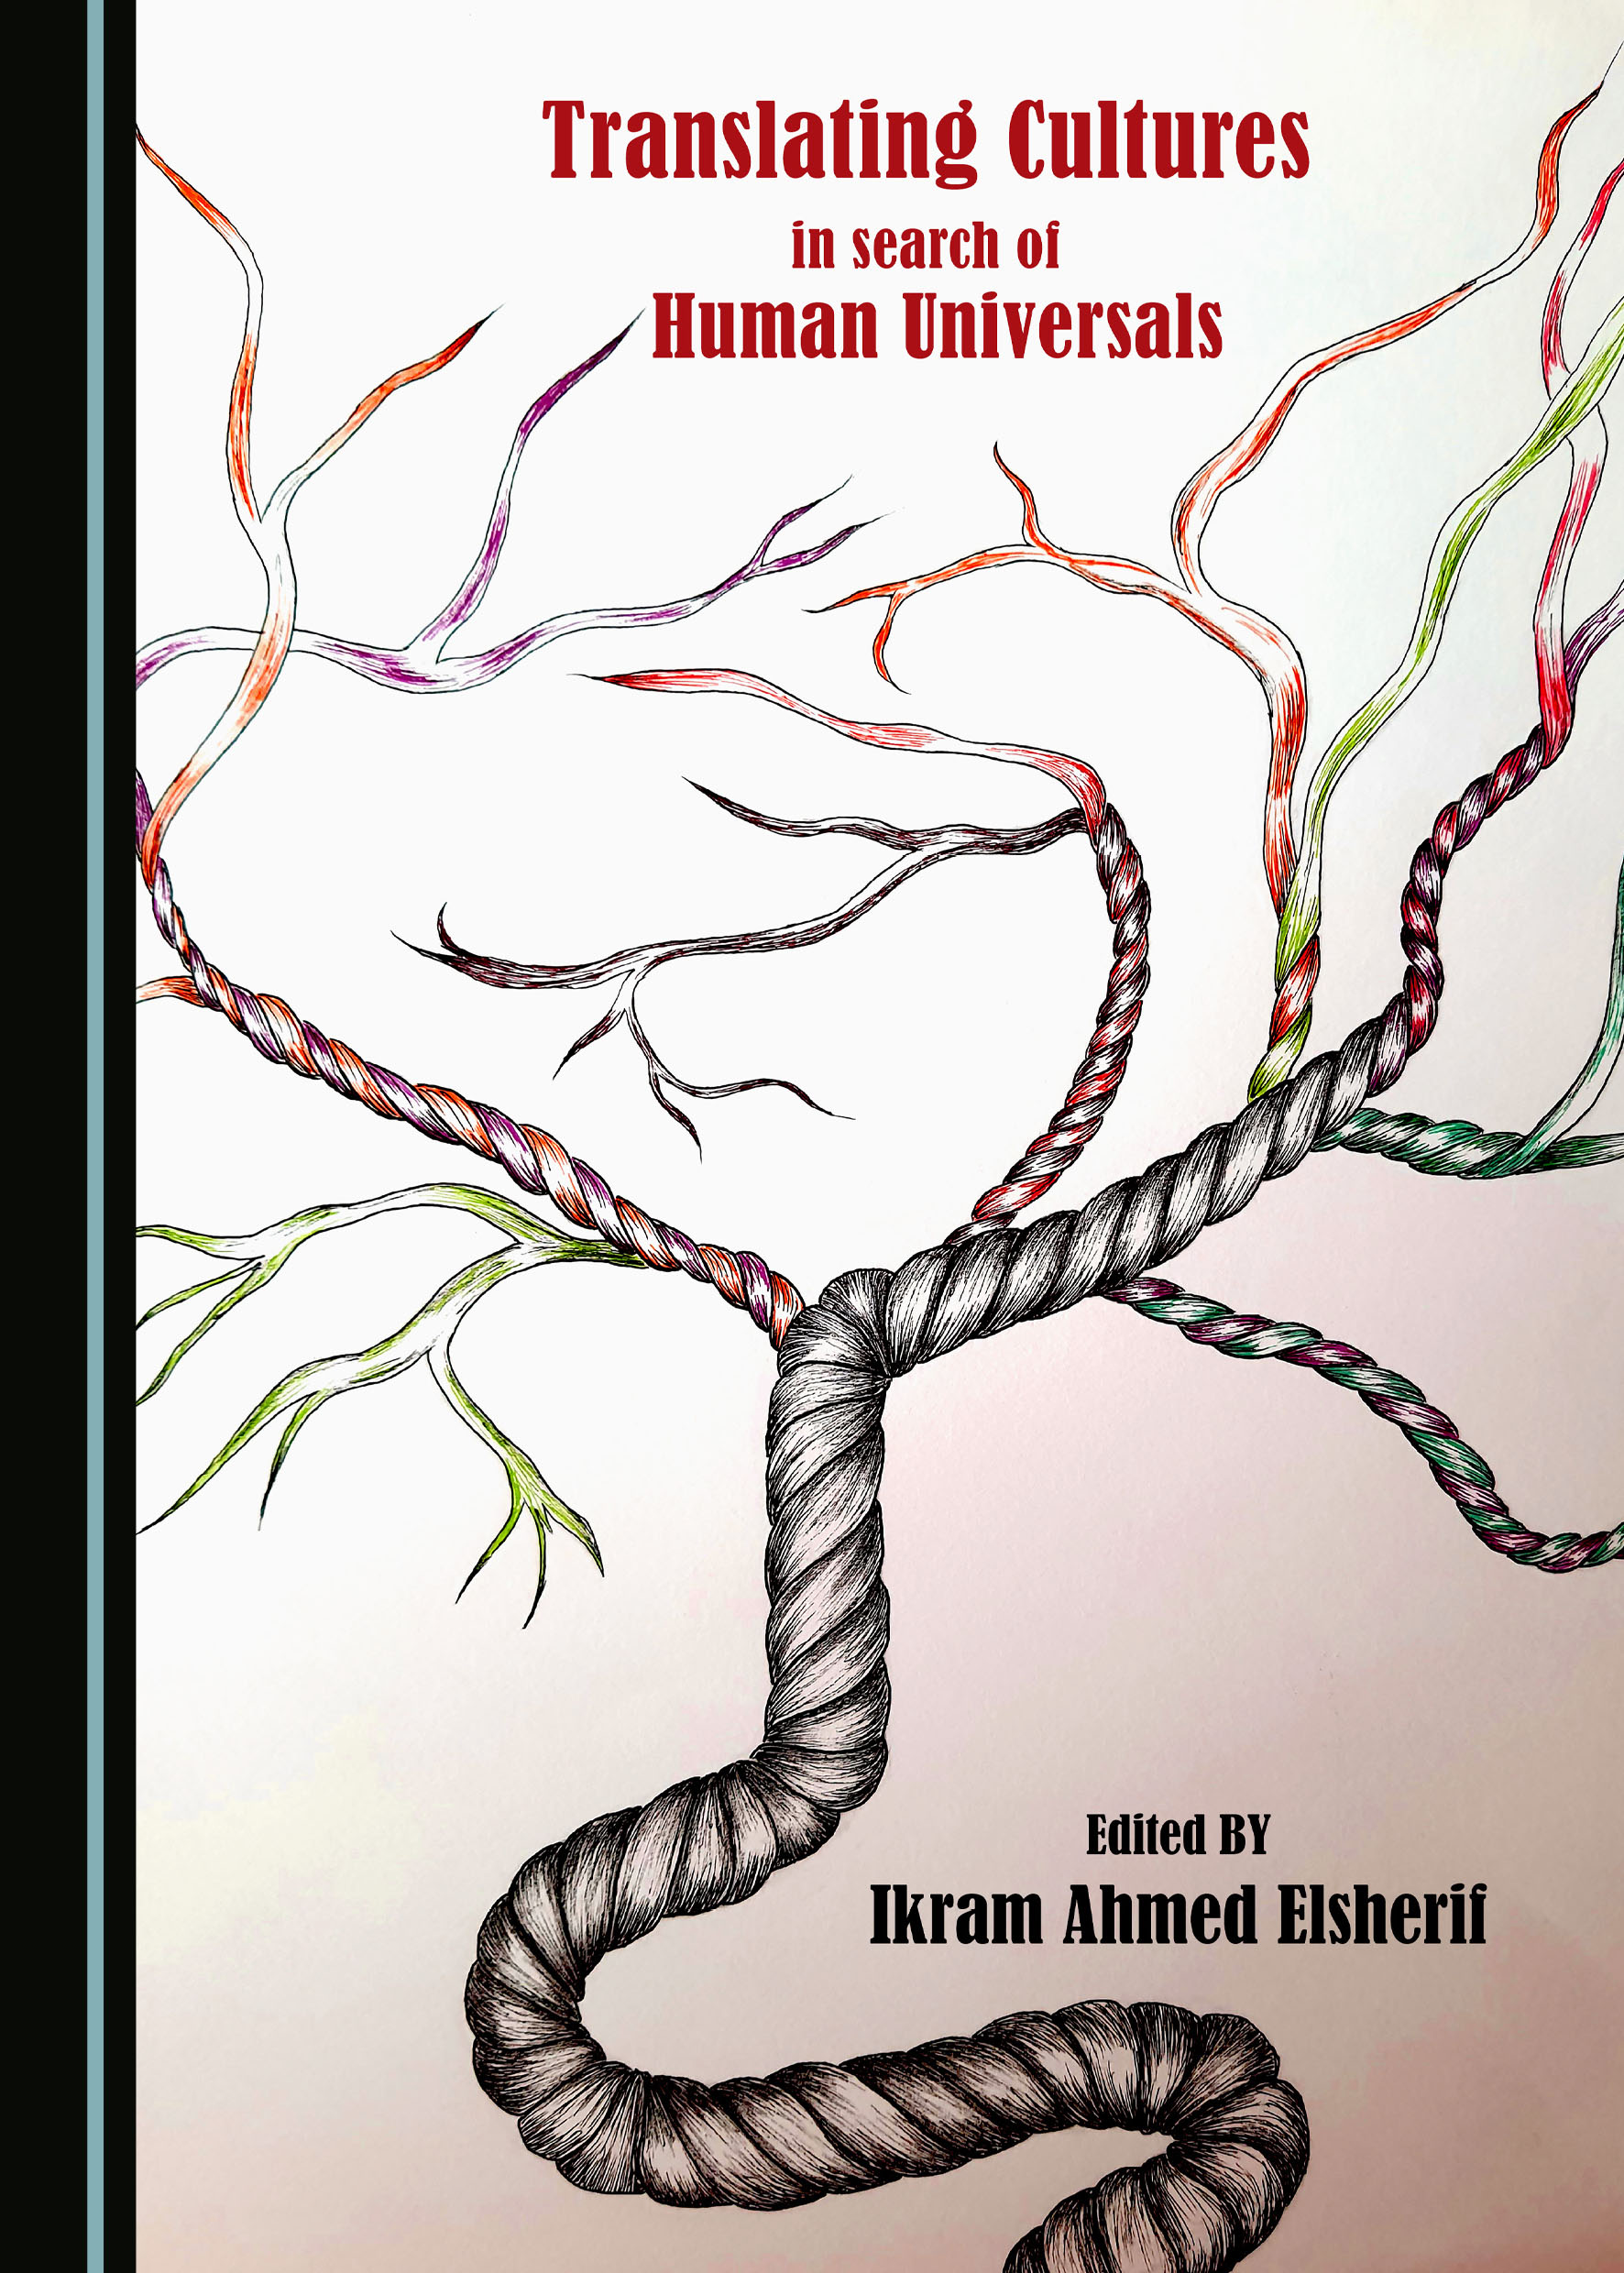 Translating Cultures in Search of Human Universals